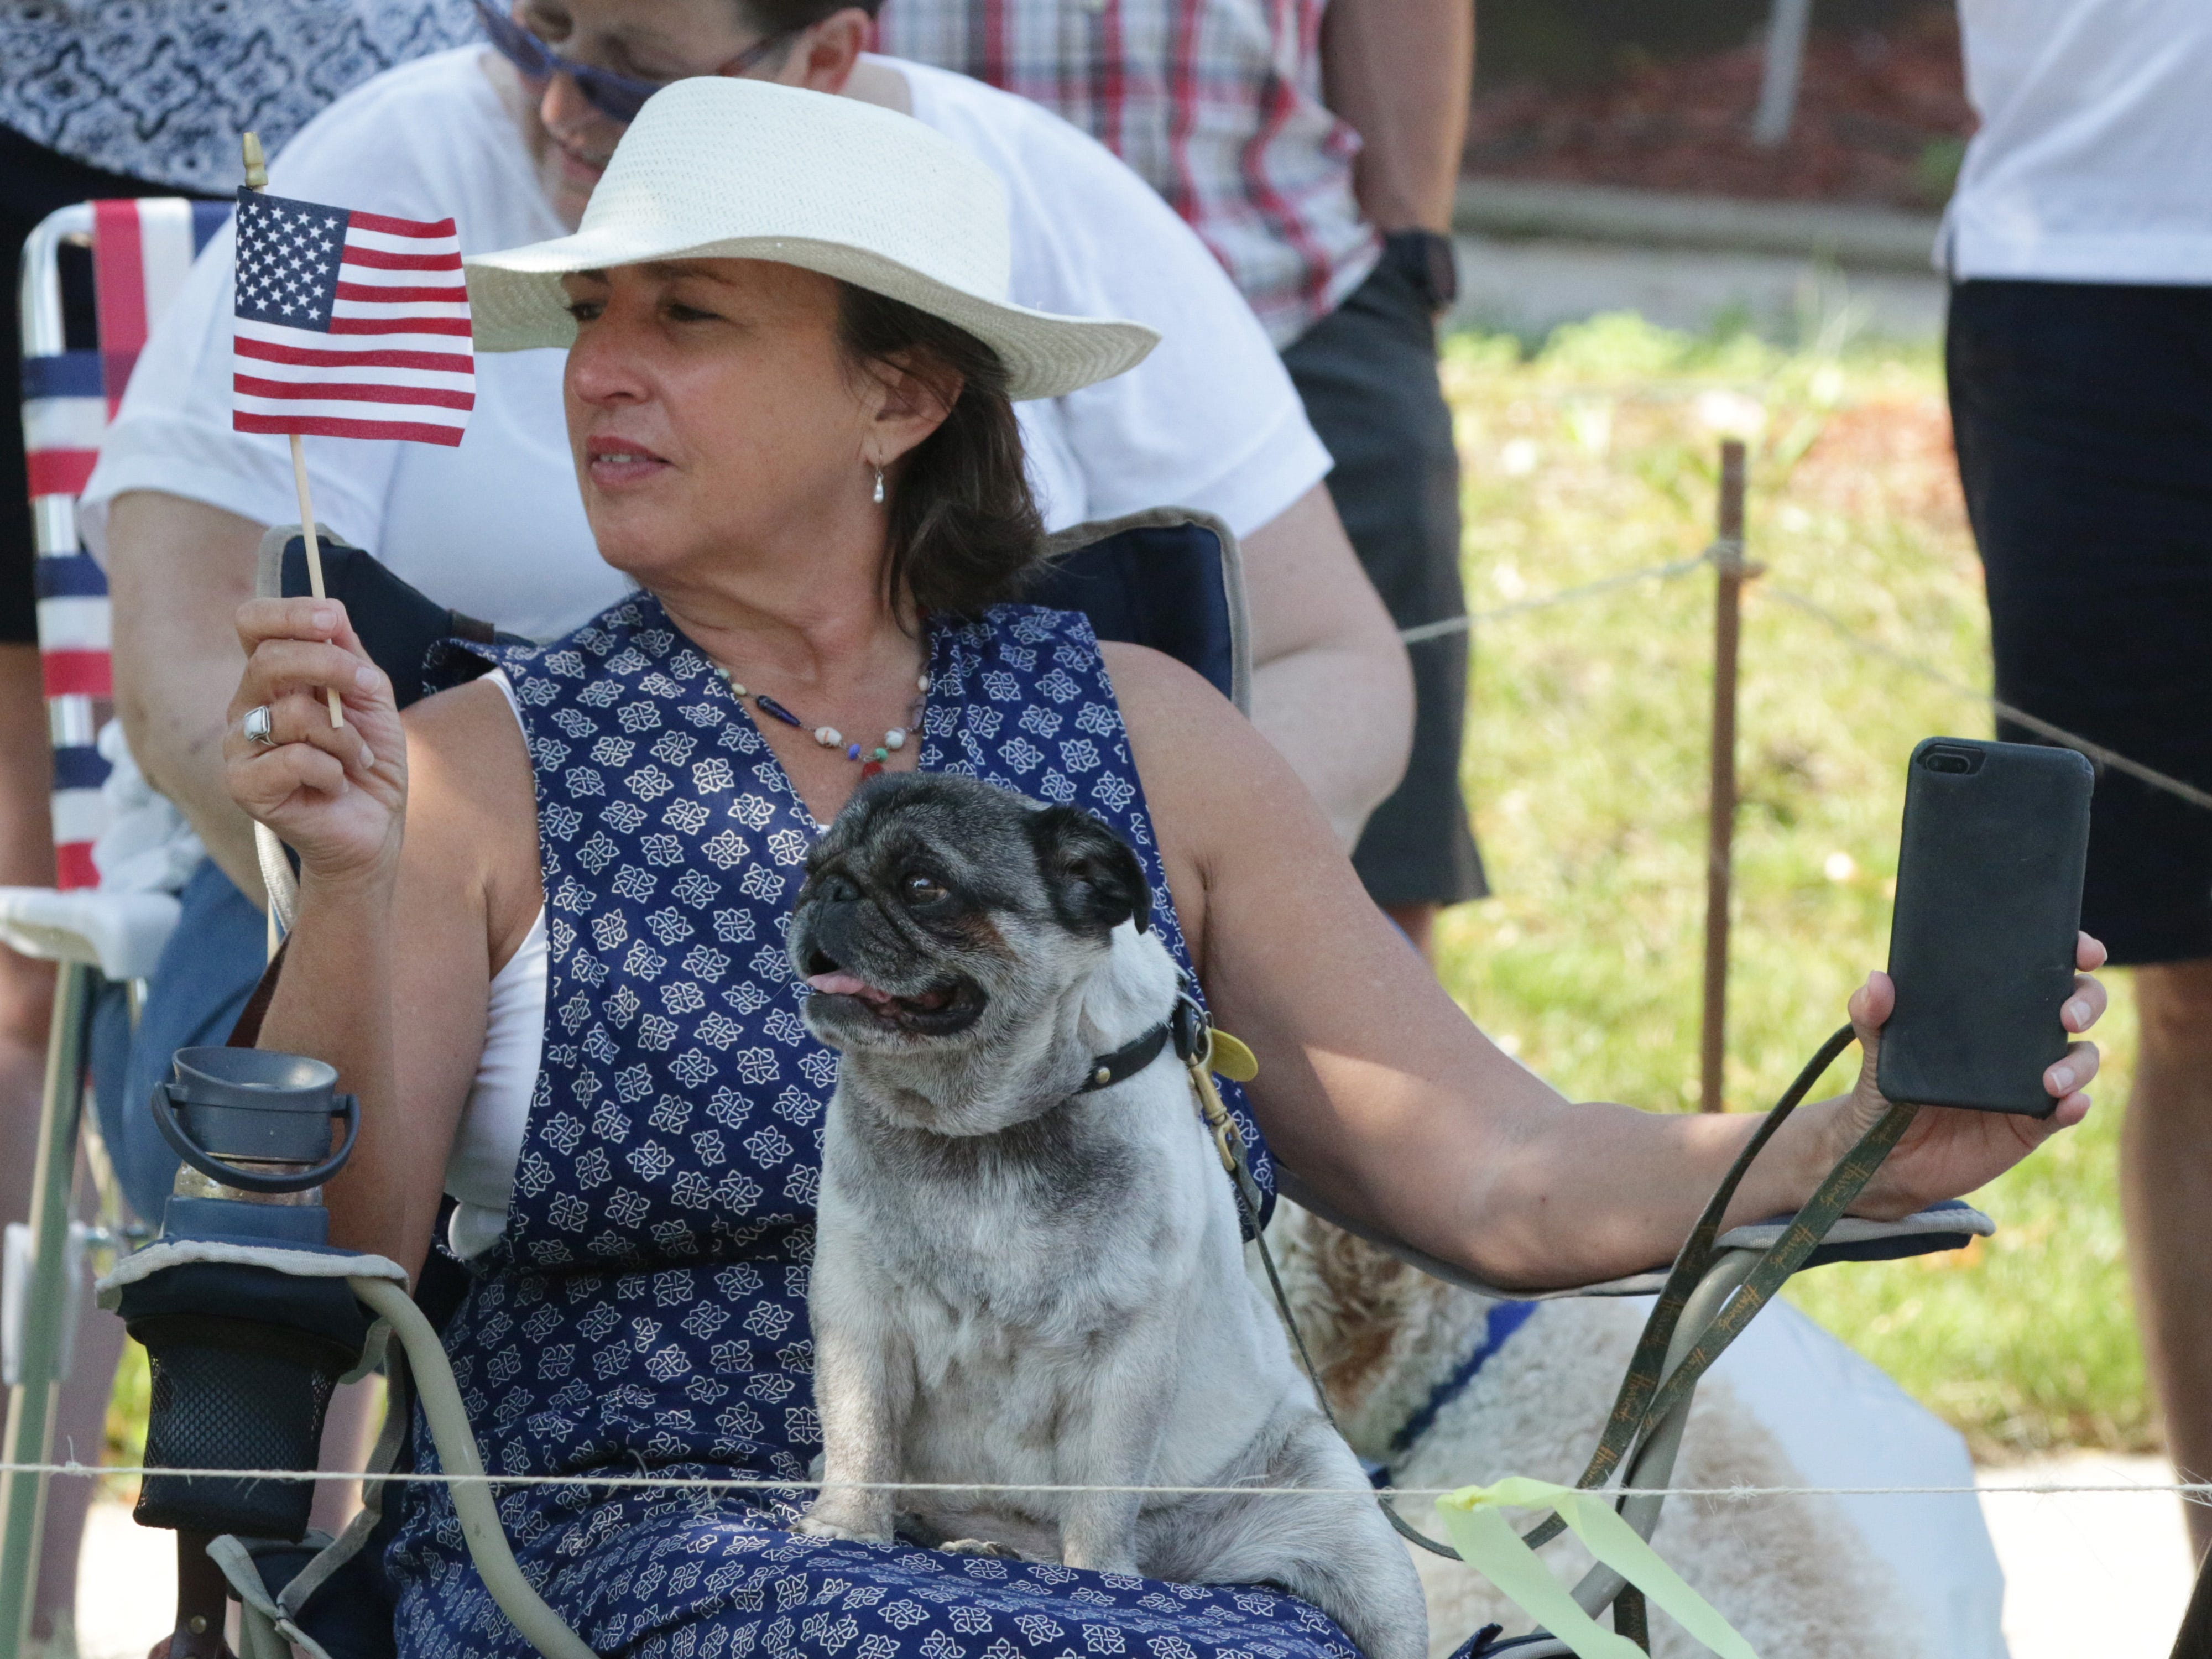 Ellen O'Brien of Elkhart Lake, Wis. and her dog Mr. Magoo watch the Fourth of July Parade, Wednesday, July 4, 2018, in Sheboygan, Wis.